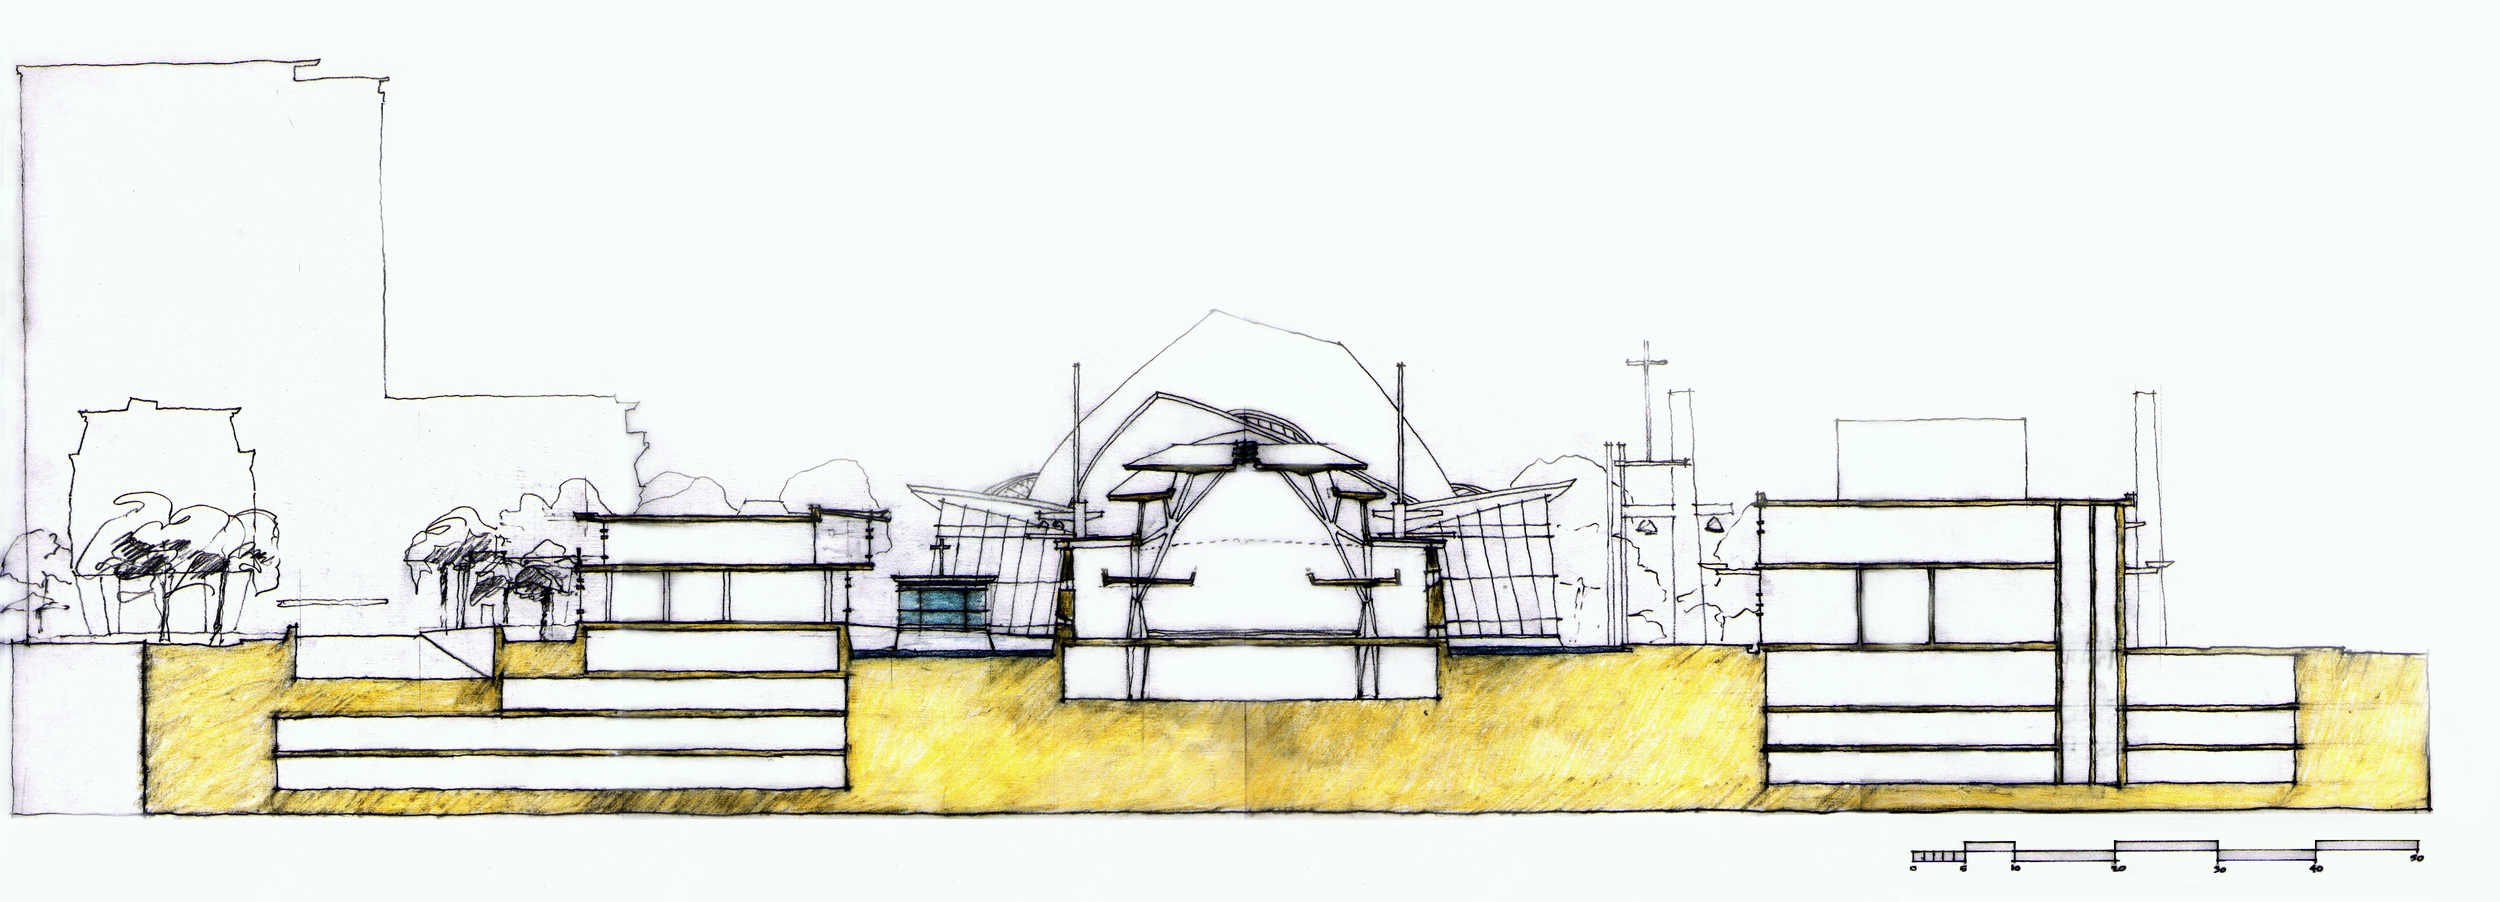 North / South Cross Section Thru Church